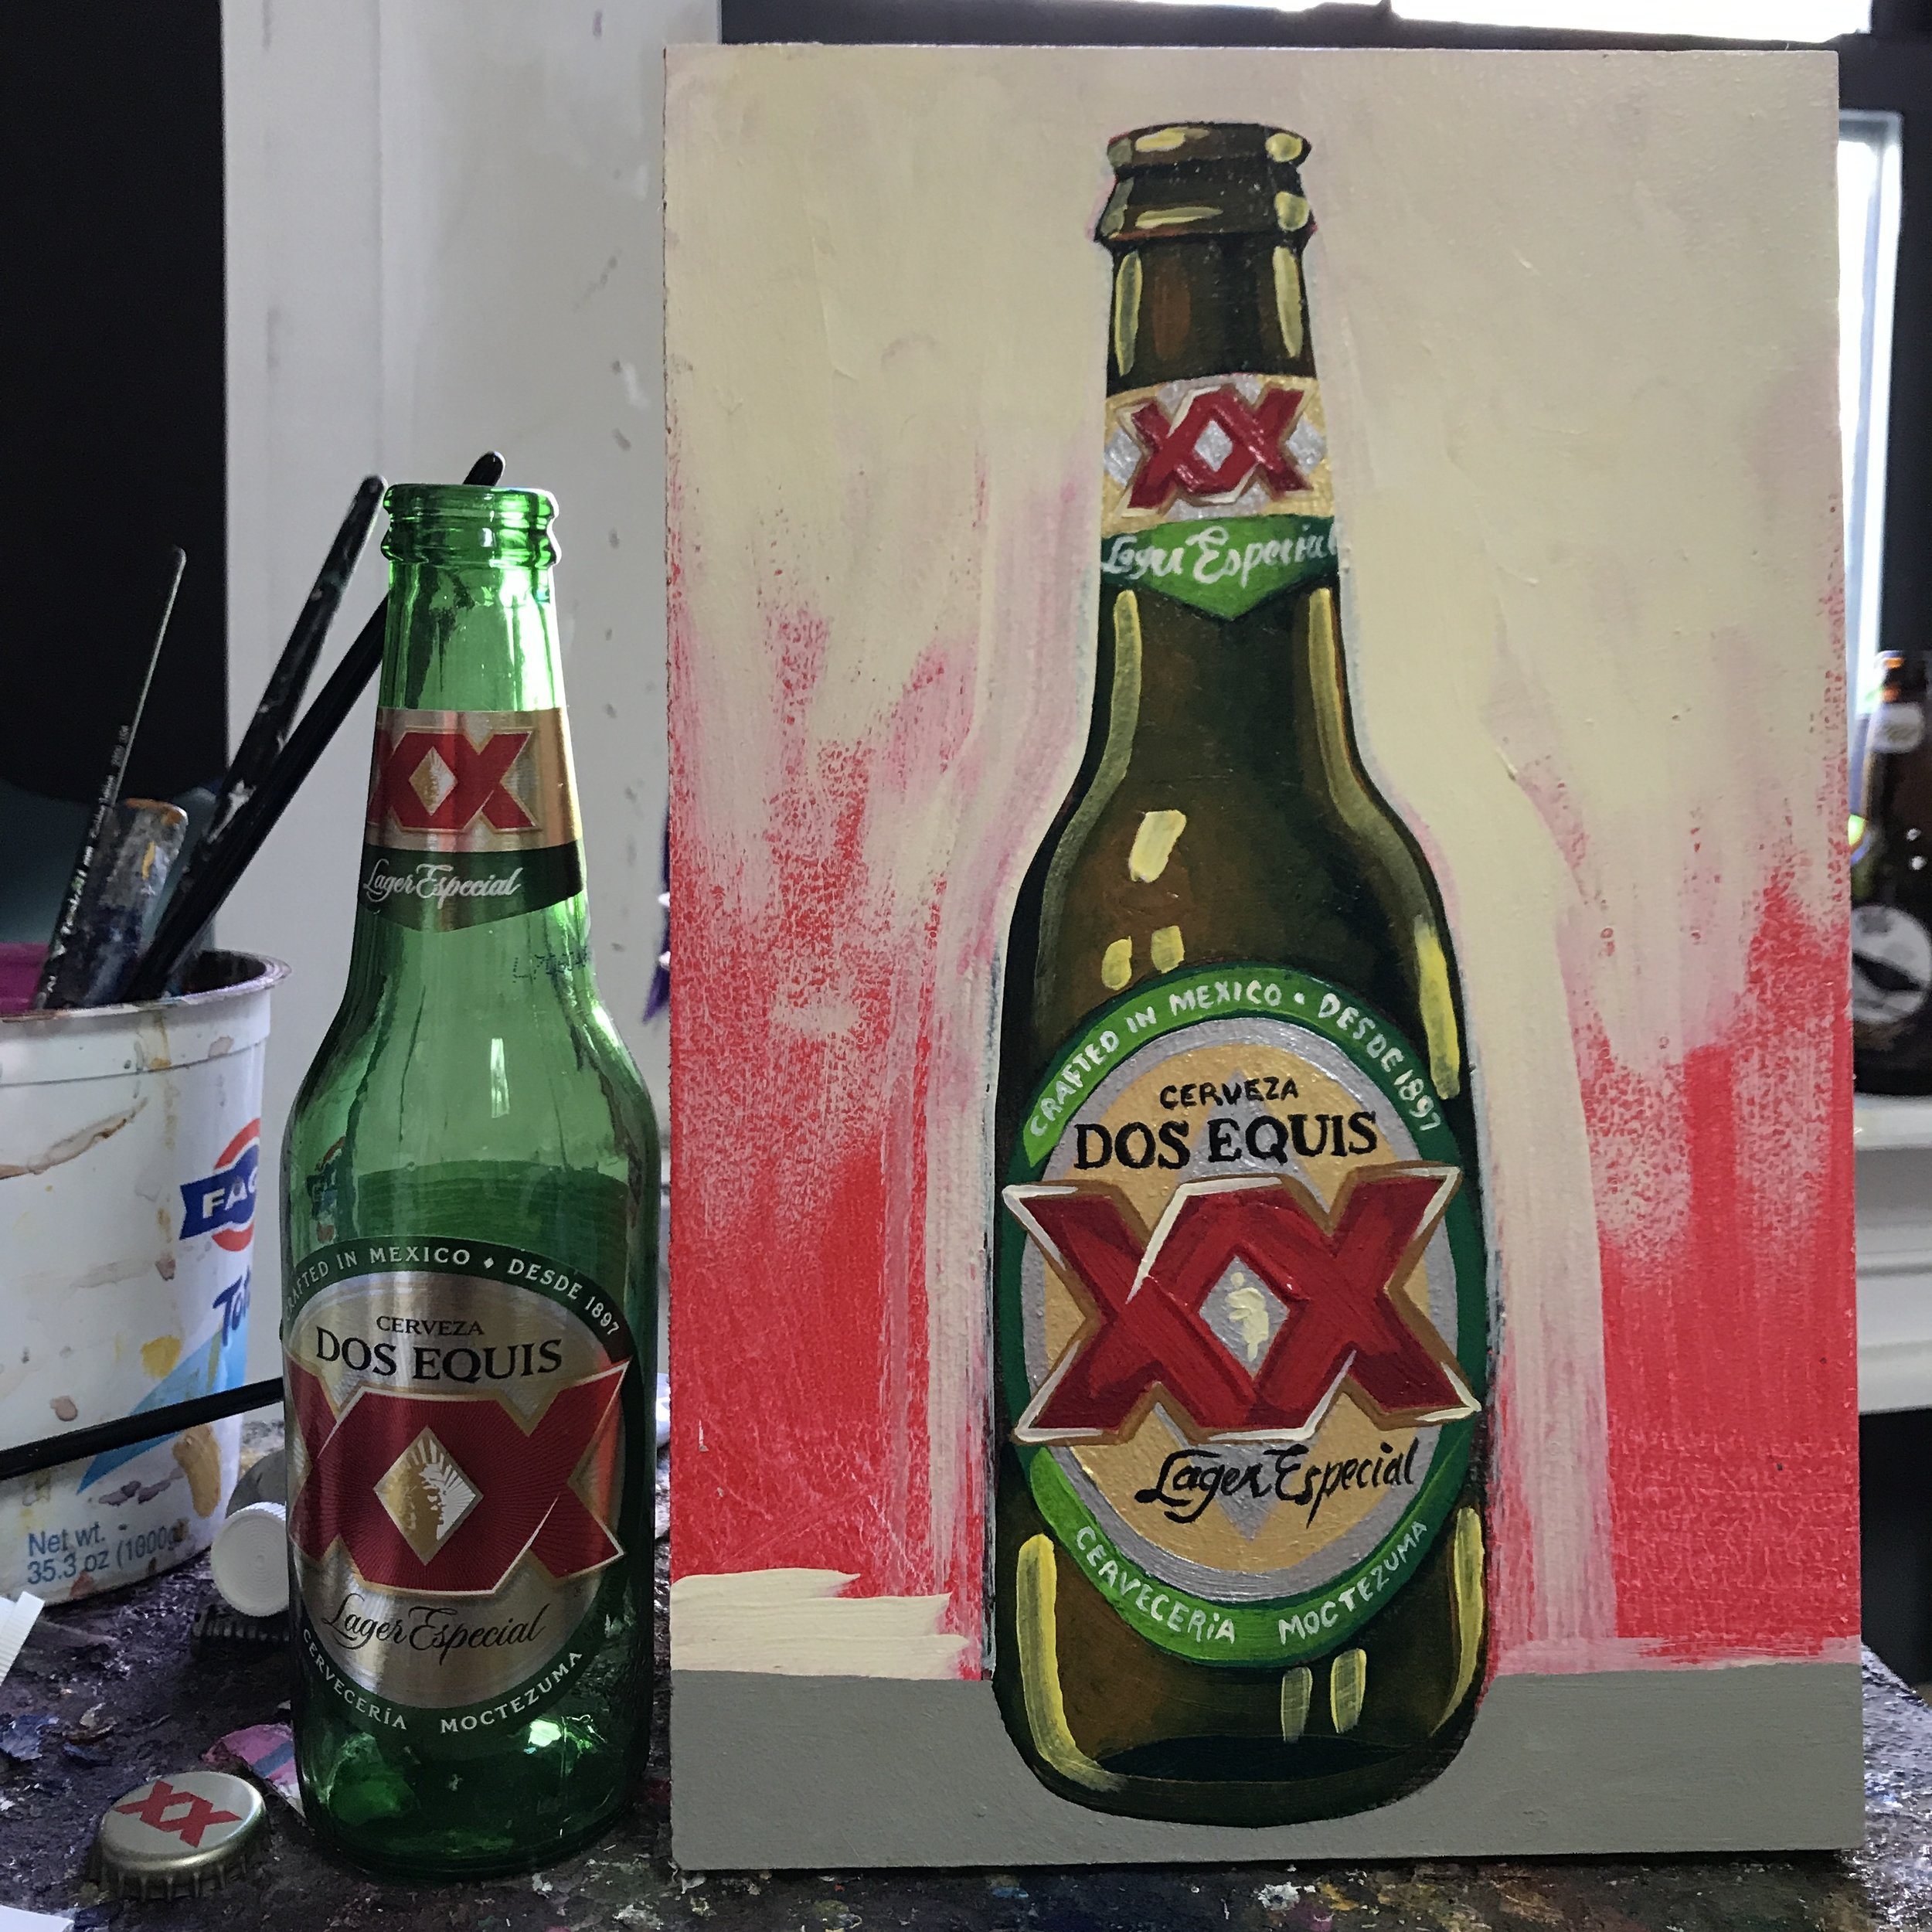 79 Dos Equis (XX) Lager (Mexico)